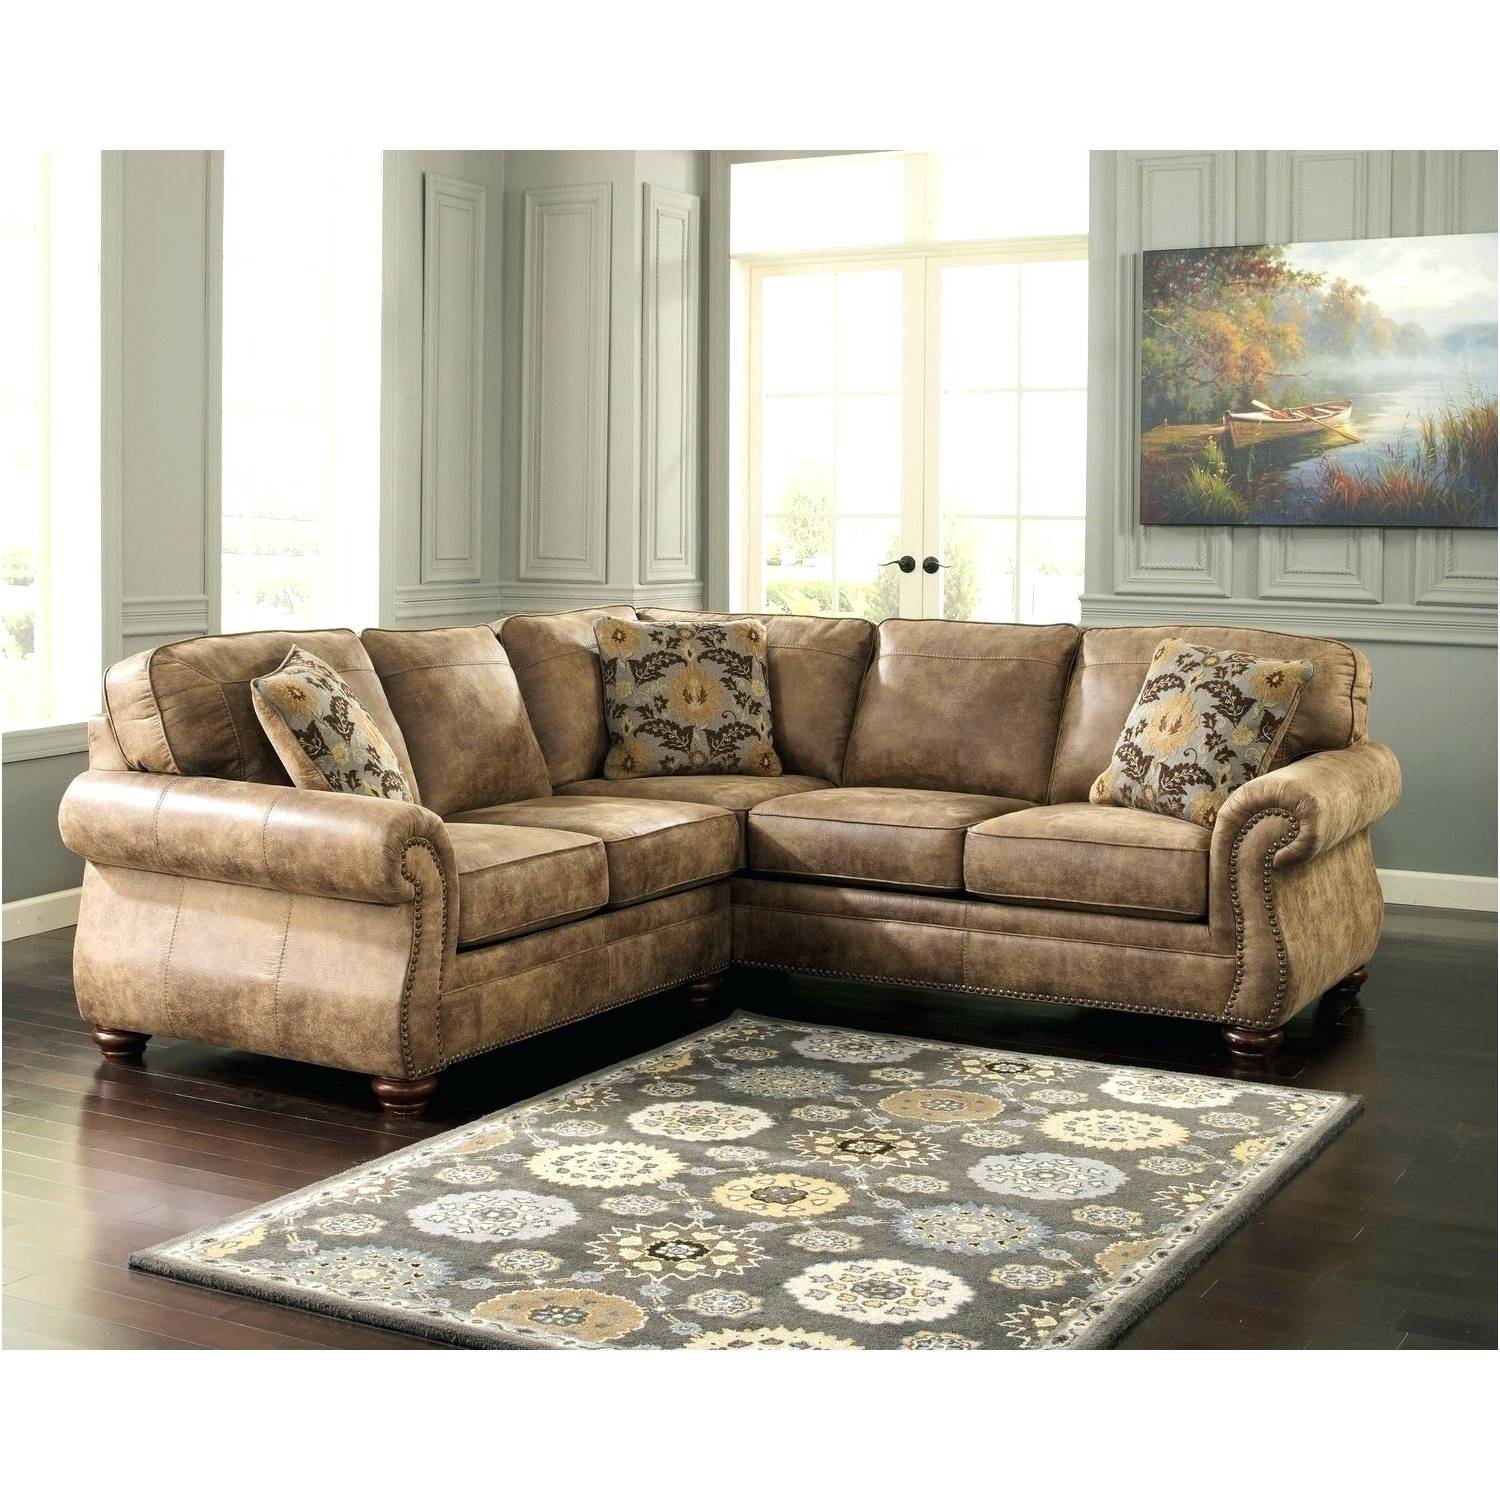 Sectionals Sofa S Sofas Ikea For Sale Sectional Small Spaces With Popular Sectional Sofas In Toronto (View 5 of 15)